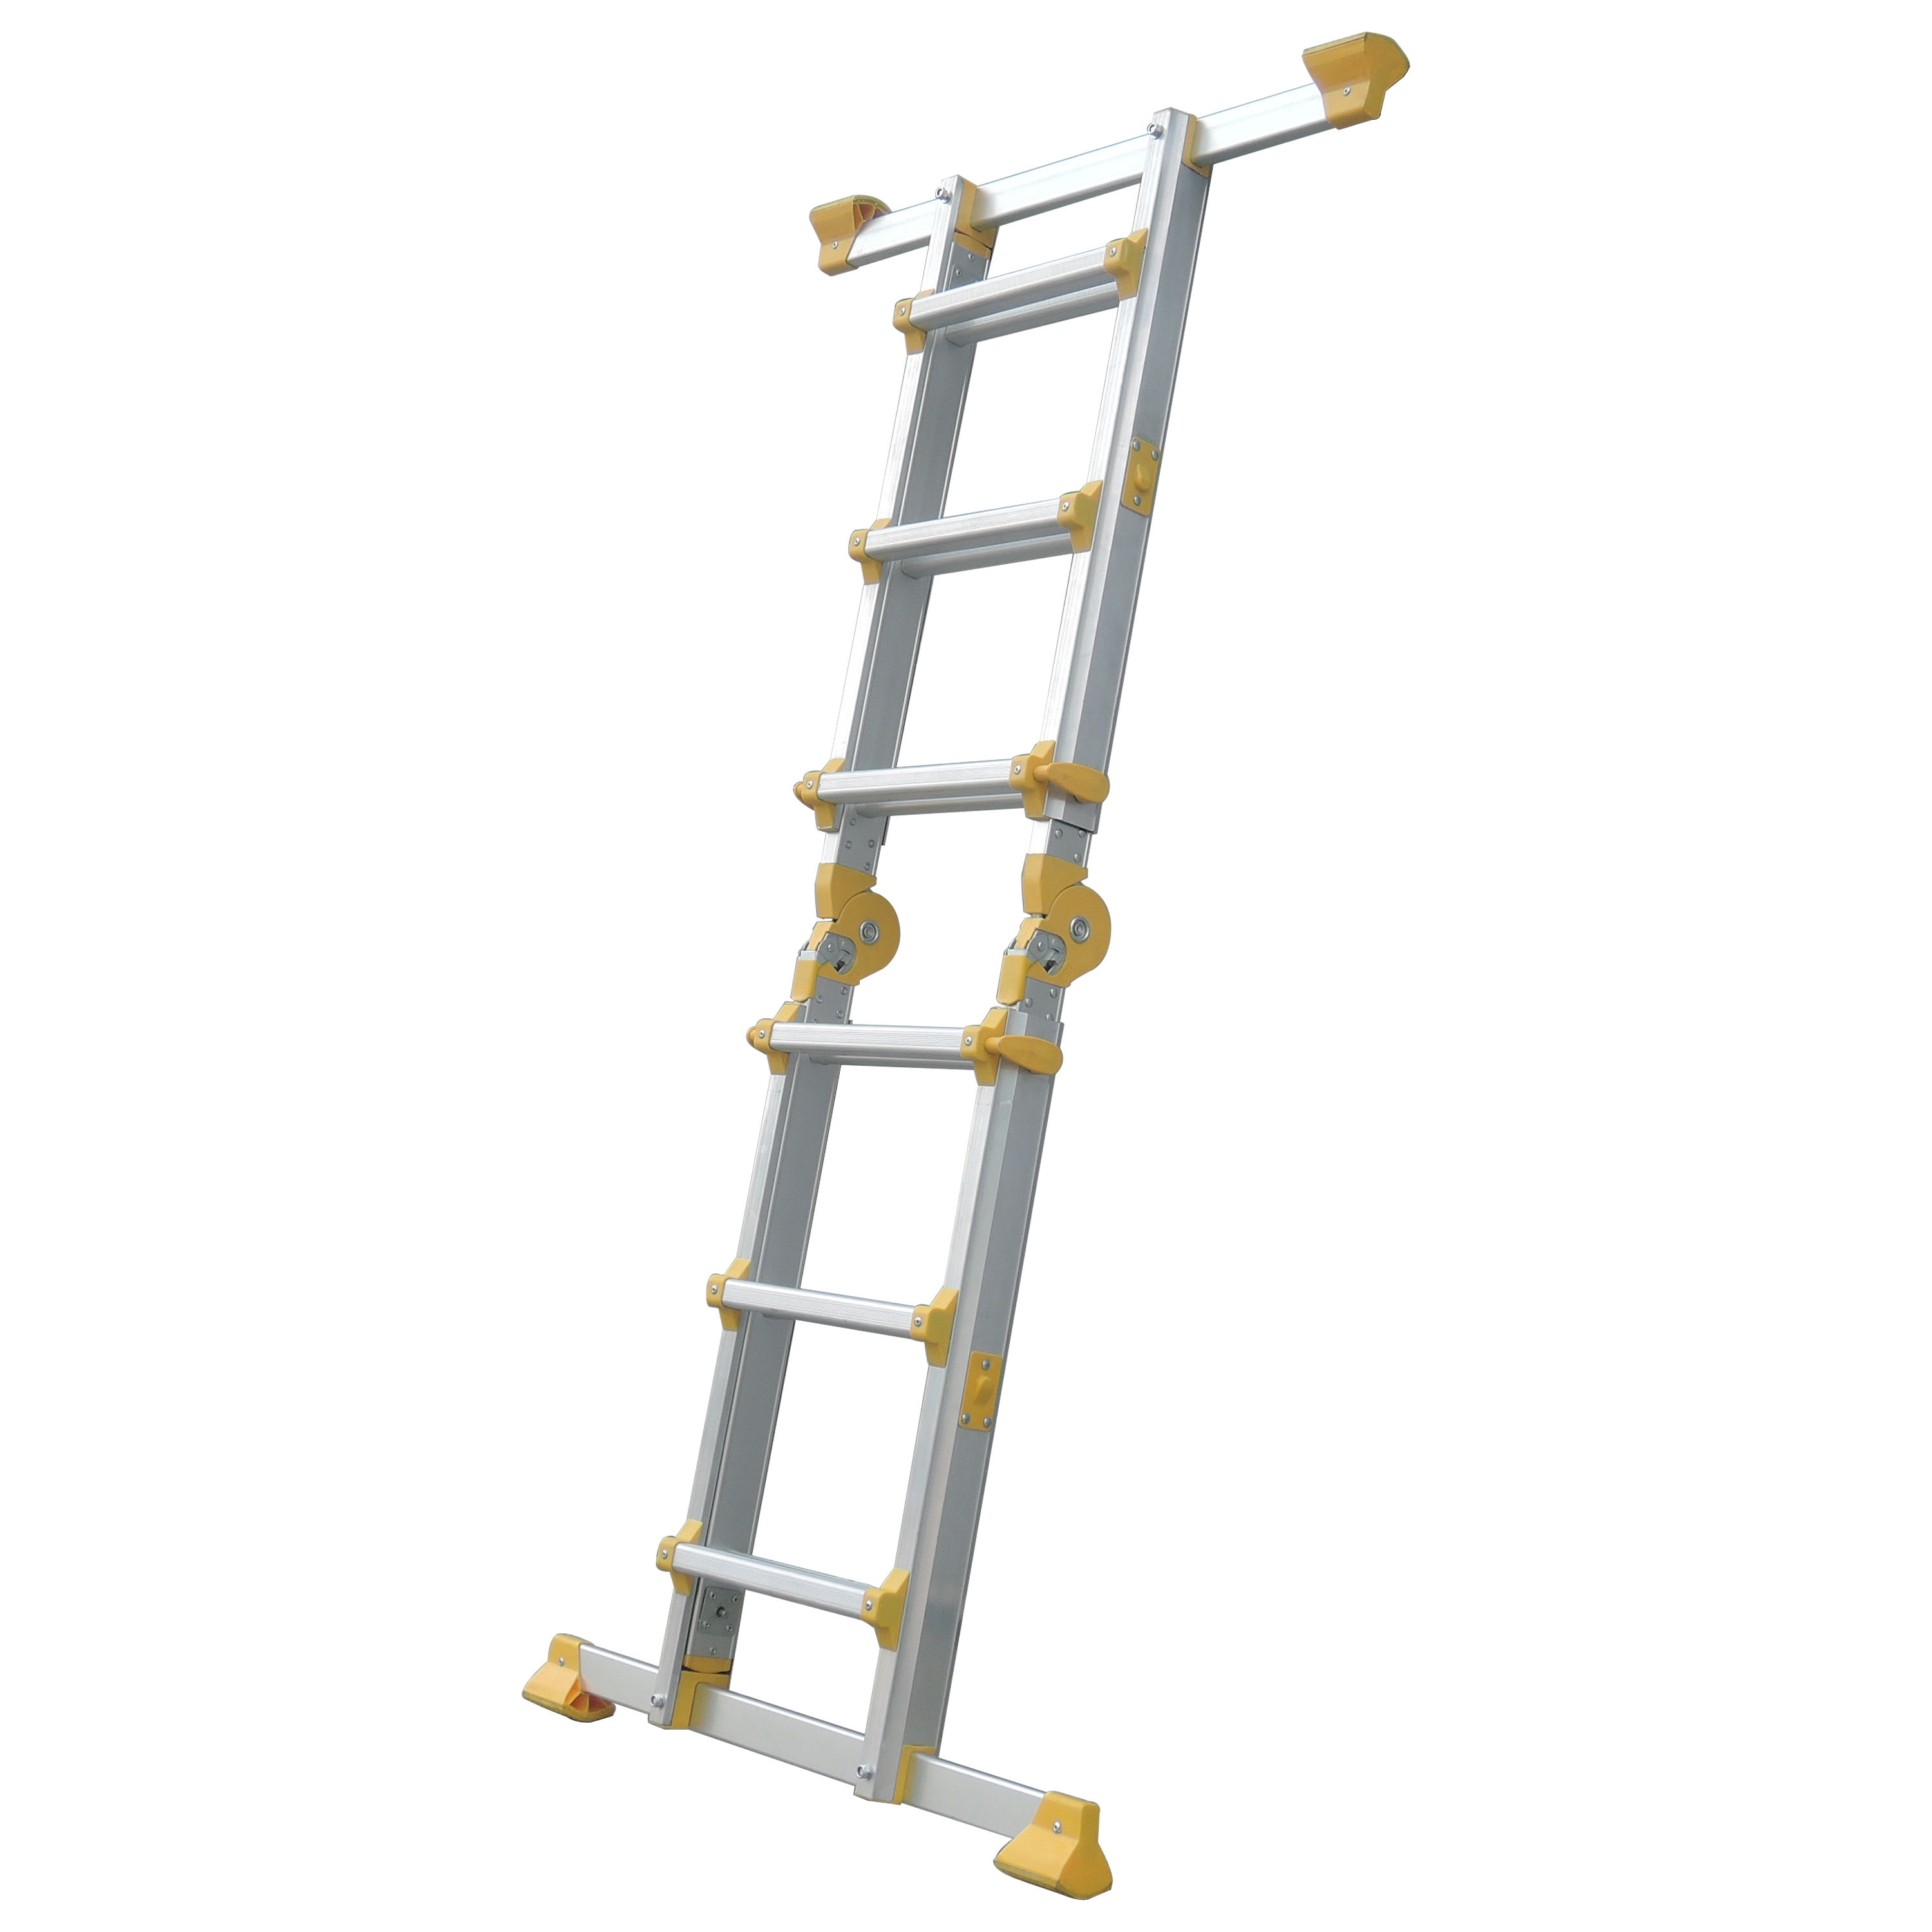 4X3 Outdoor Indoor Opvouwbare Multi-Functionele Aluminium Extension Ladder Gs